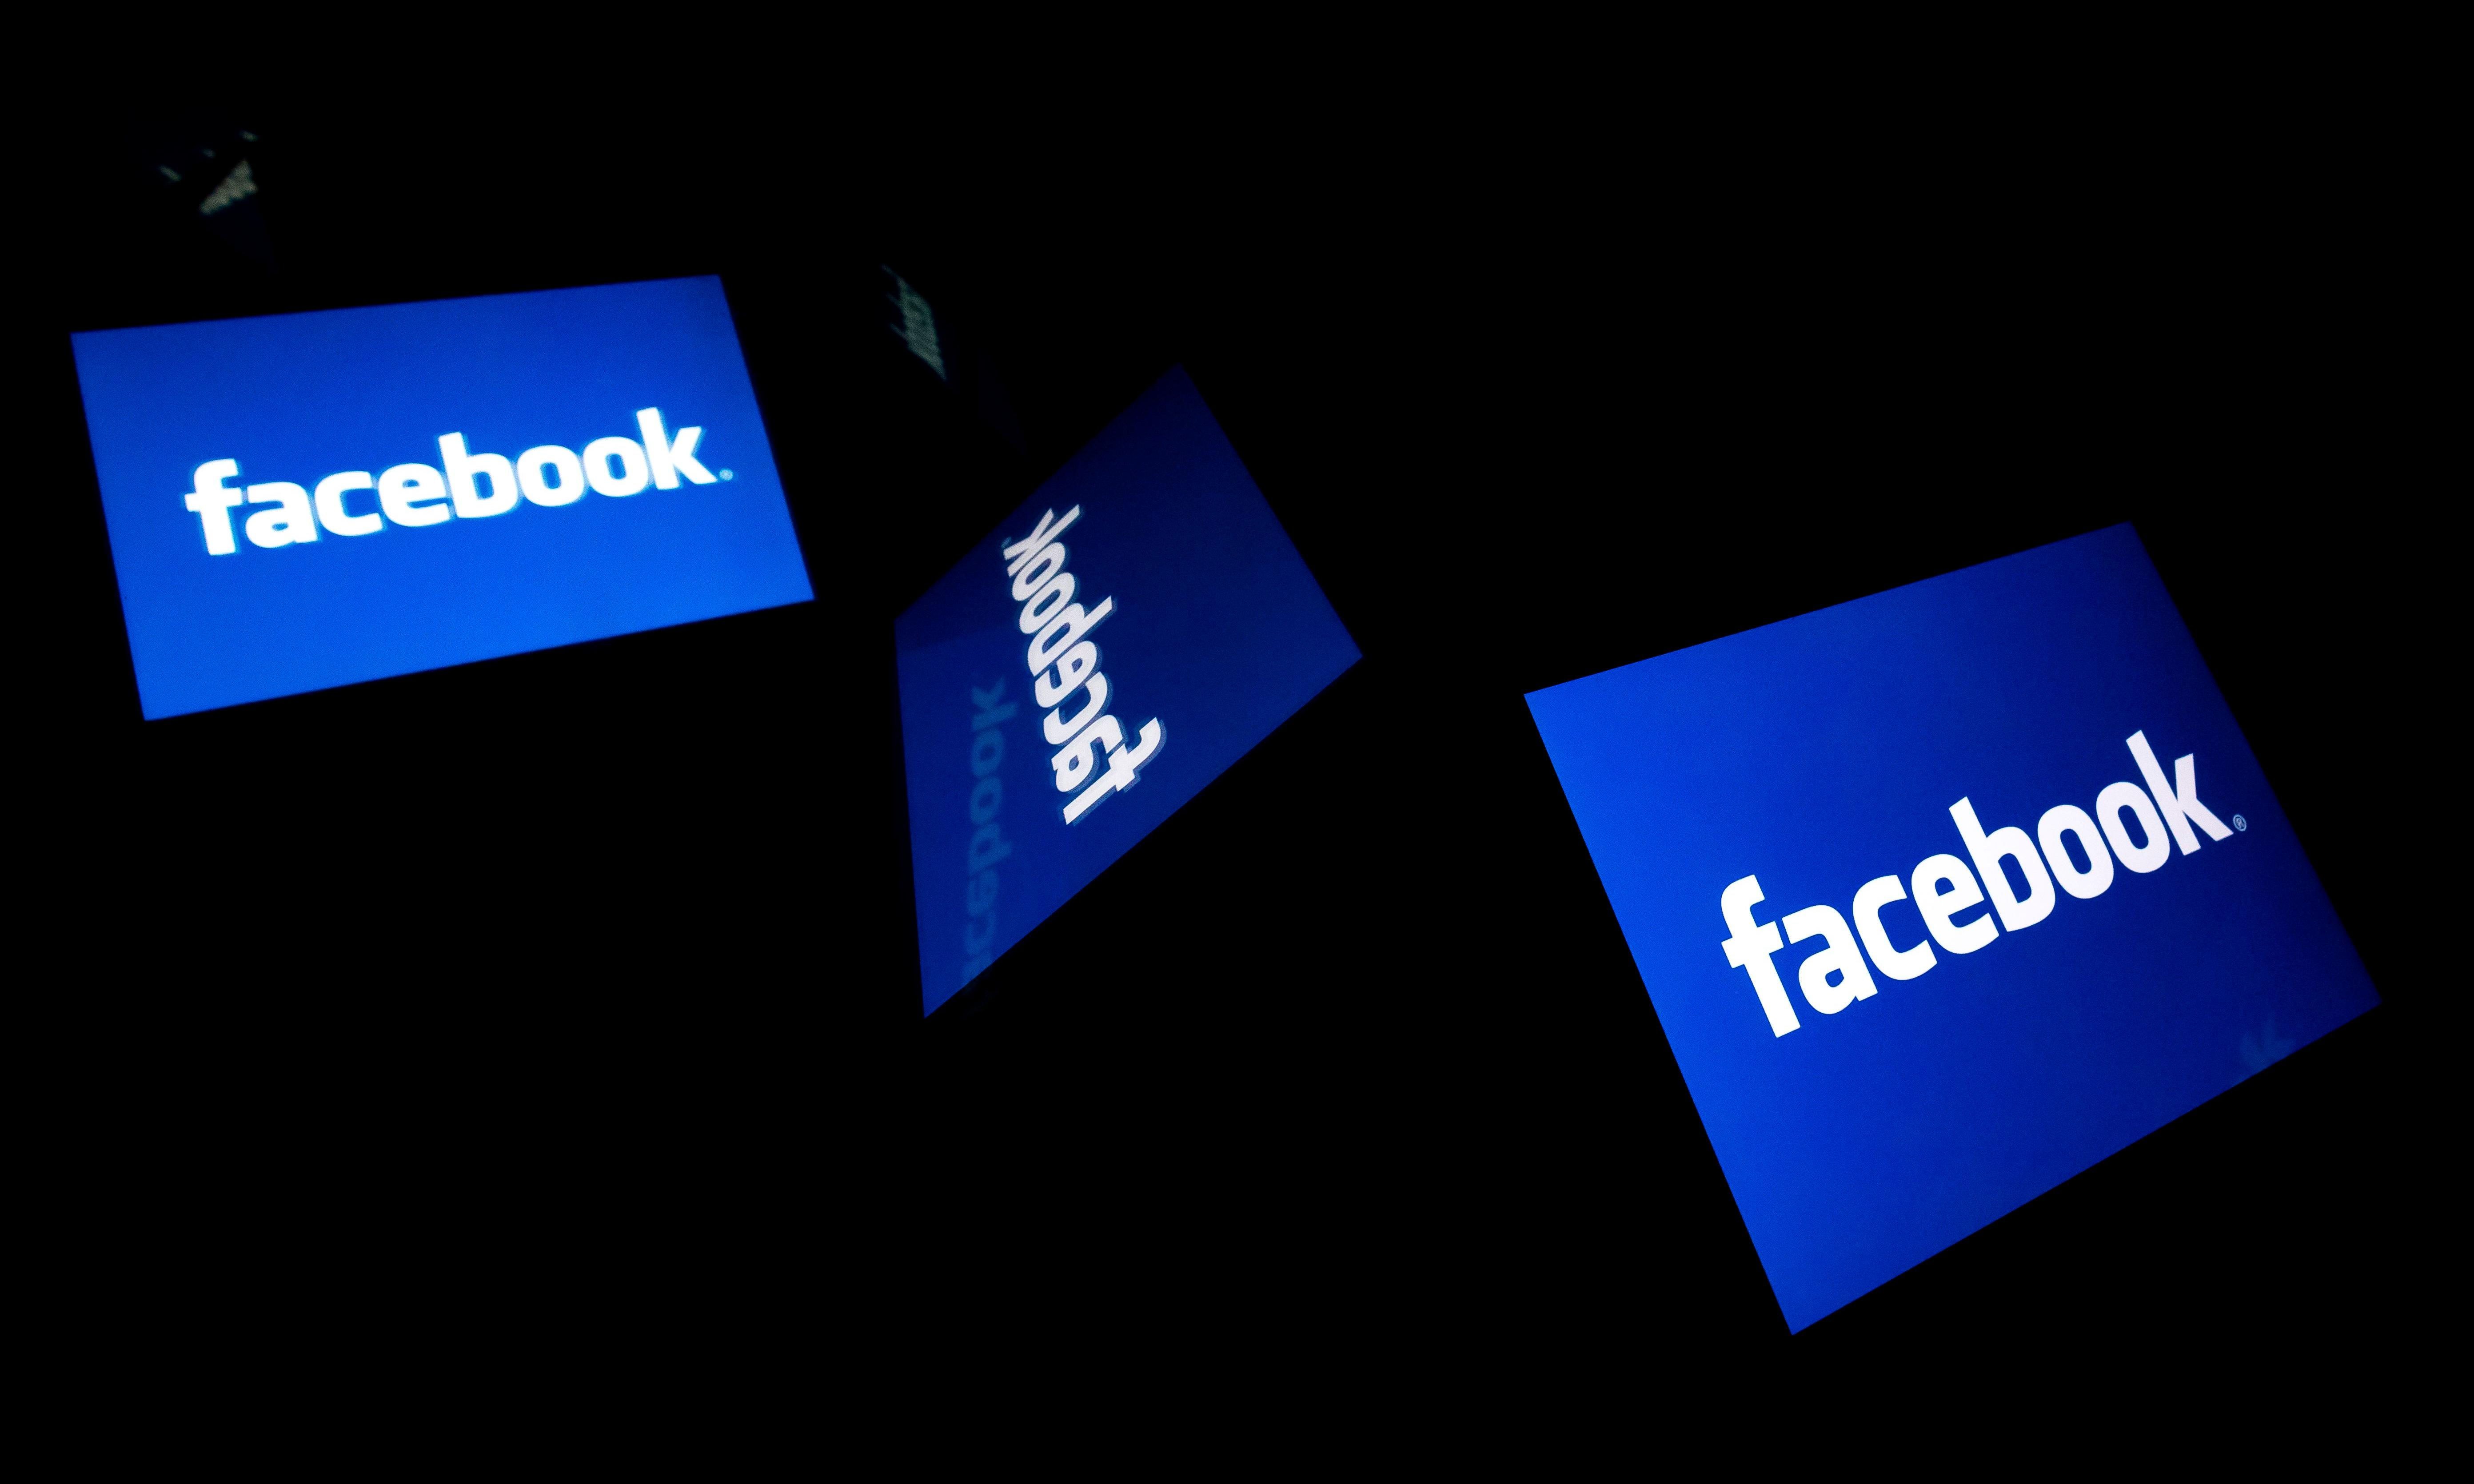 Facebook could have moved faster on Christchurch video 'if it were suicide'